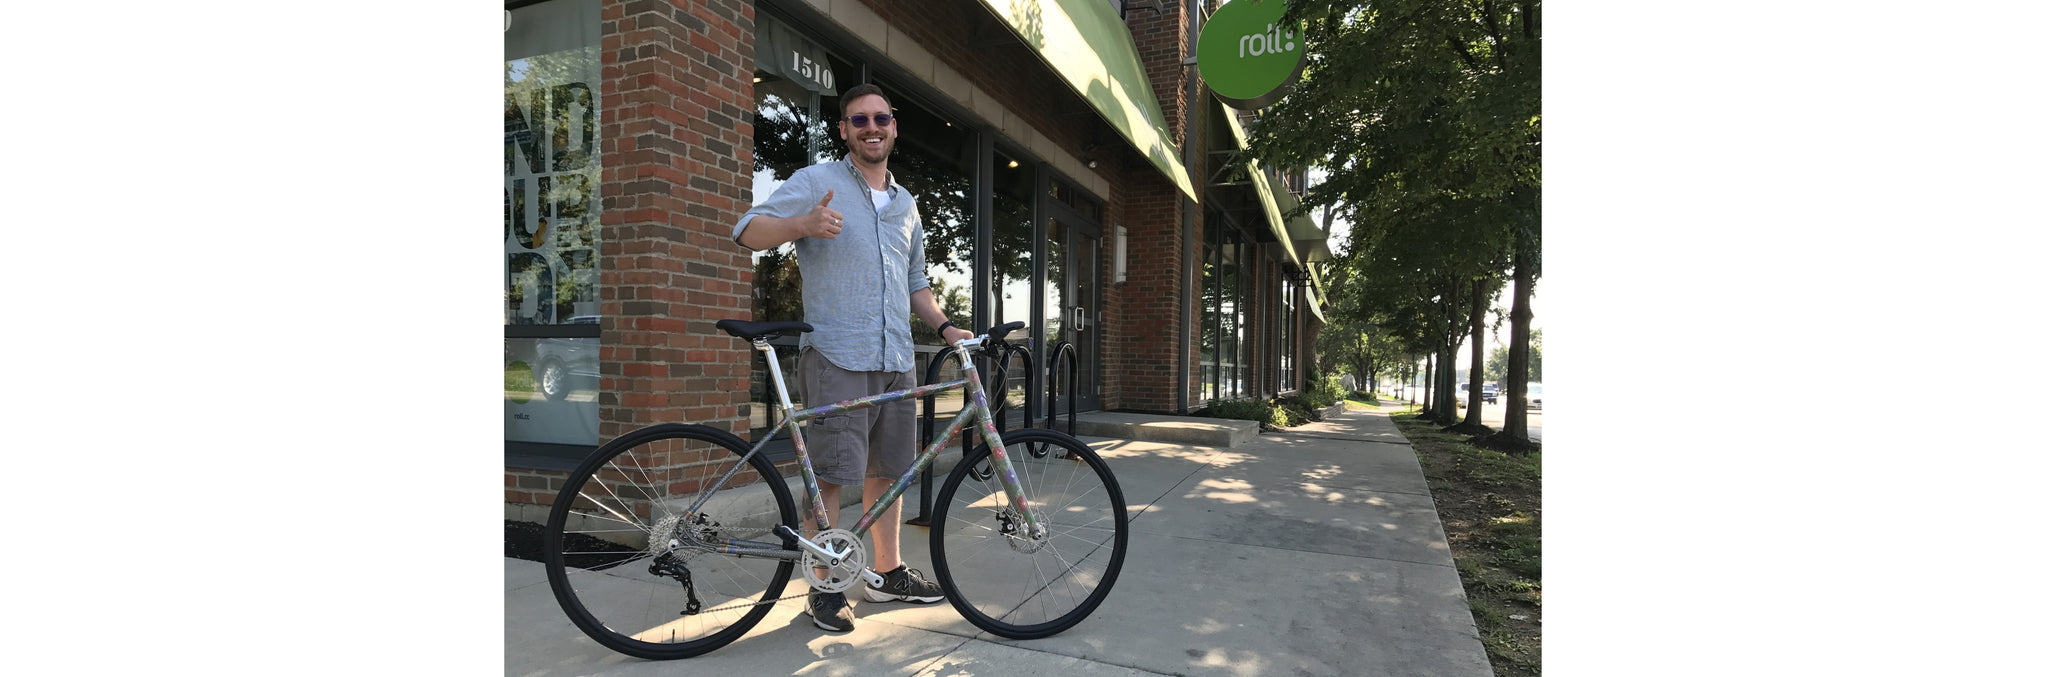 Randall Hoar Wins the S:1 Artist Edition PRIDE Bike